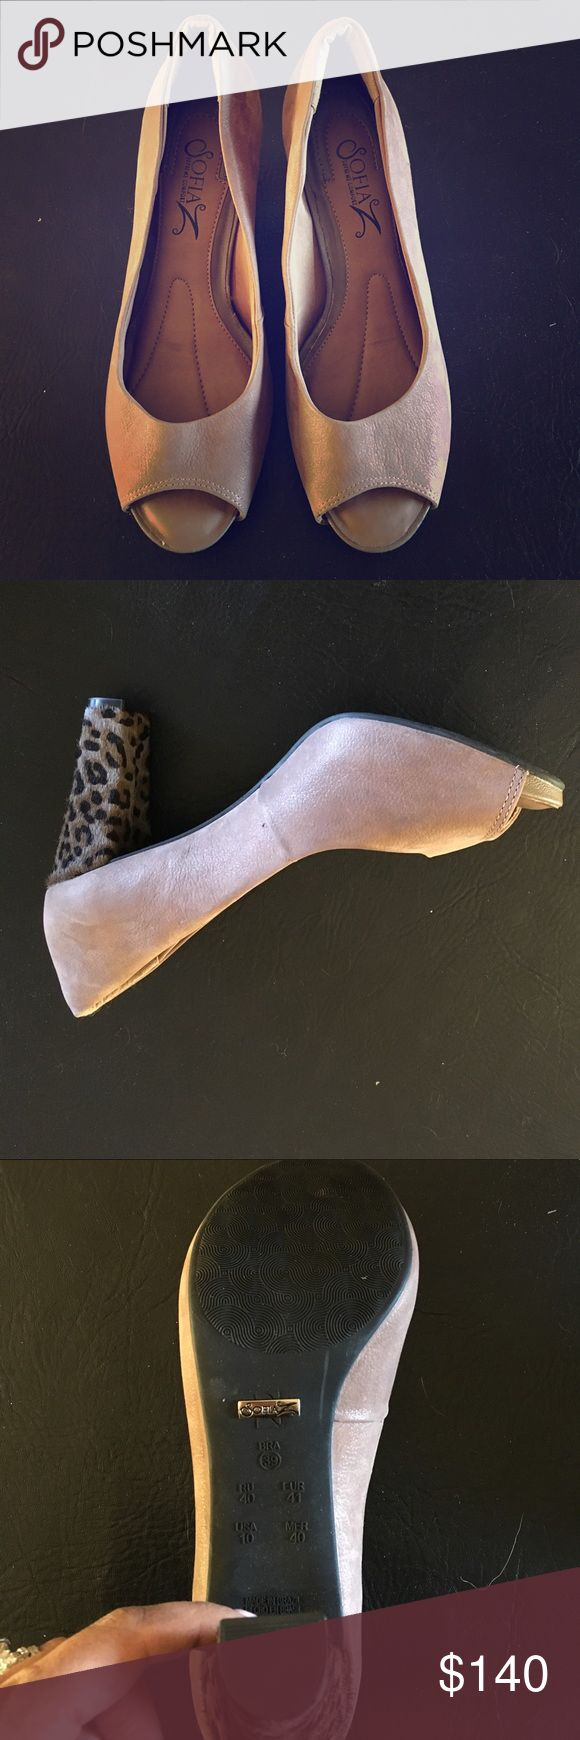 Sofia Z Peep Toe Pumps with leopard heel New Sofia Z nude Peep Toe pumps with leopard heel. Size 10. Never worn sofia z Shoes Heels